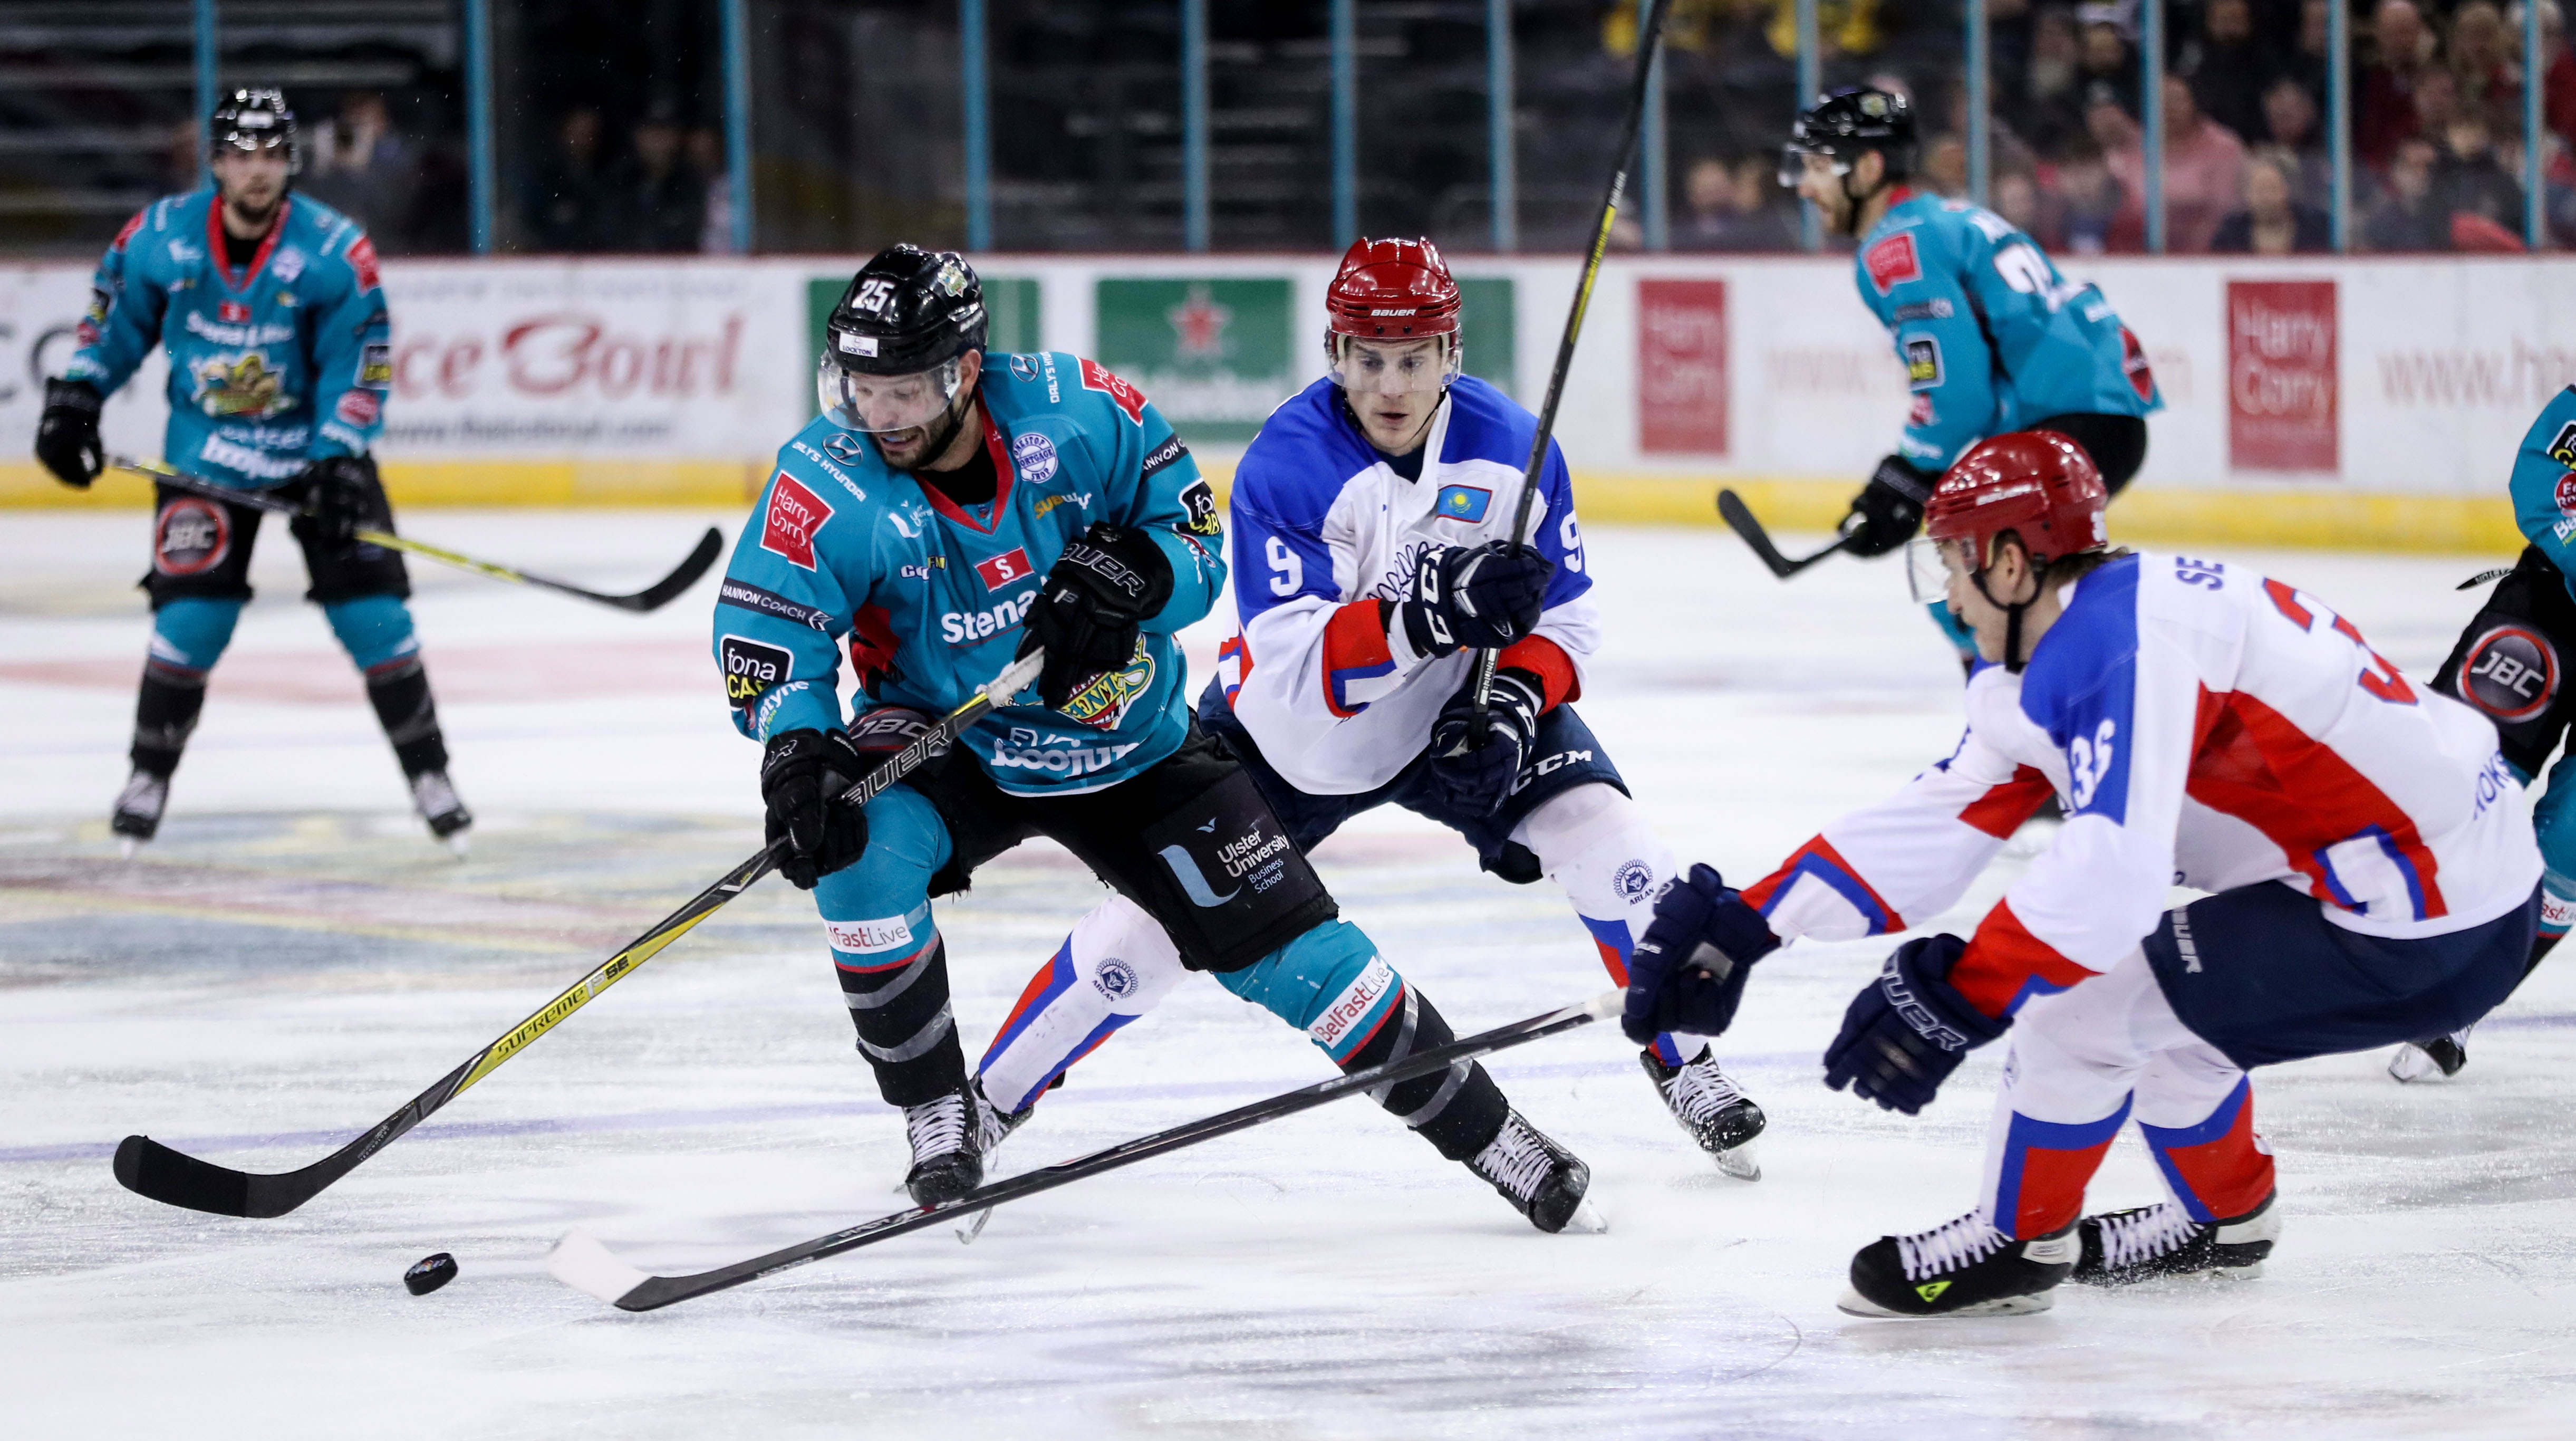 IIHF Continental Cup Final - Belfast Giants v Arlan Kokshetau